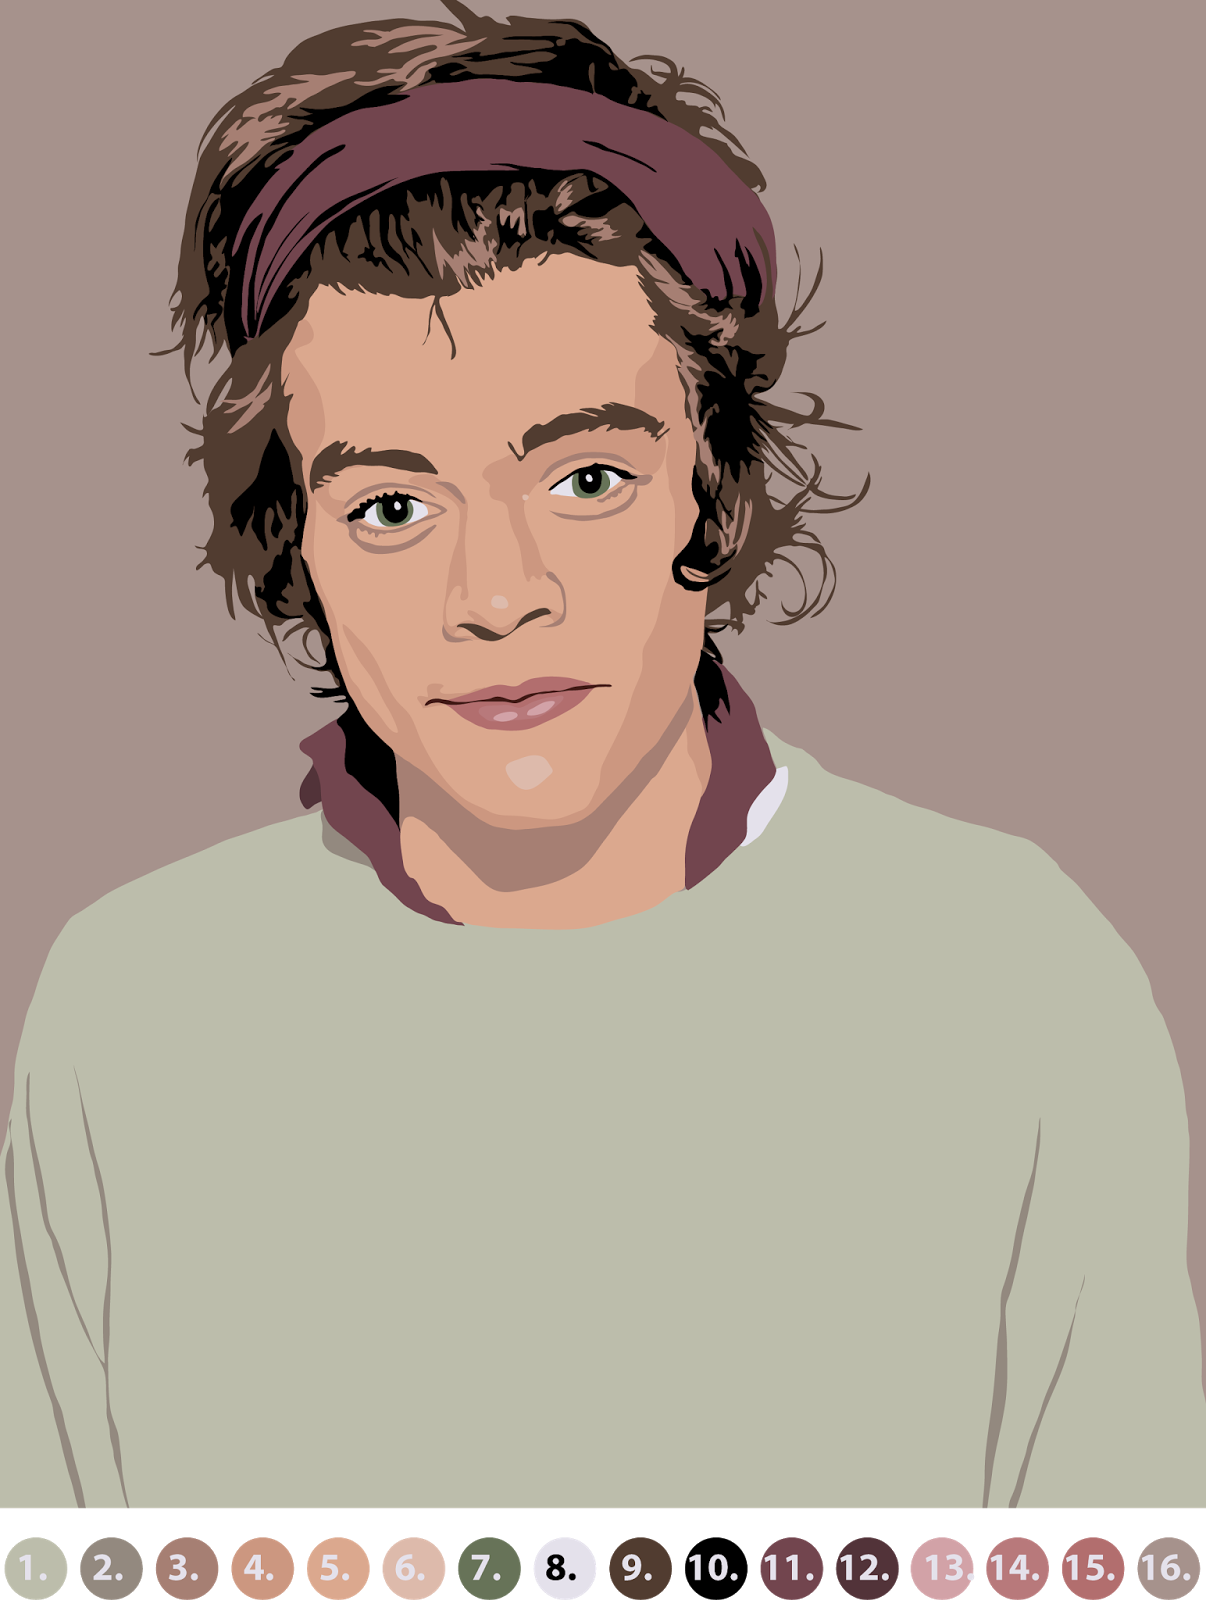 harry-styles-one-direction, harry-styles-long-hair, harry-styles-2015, harry-styles-now, harry-styles-cute, harry-styles-graphic